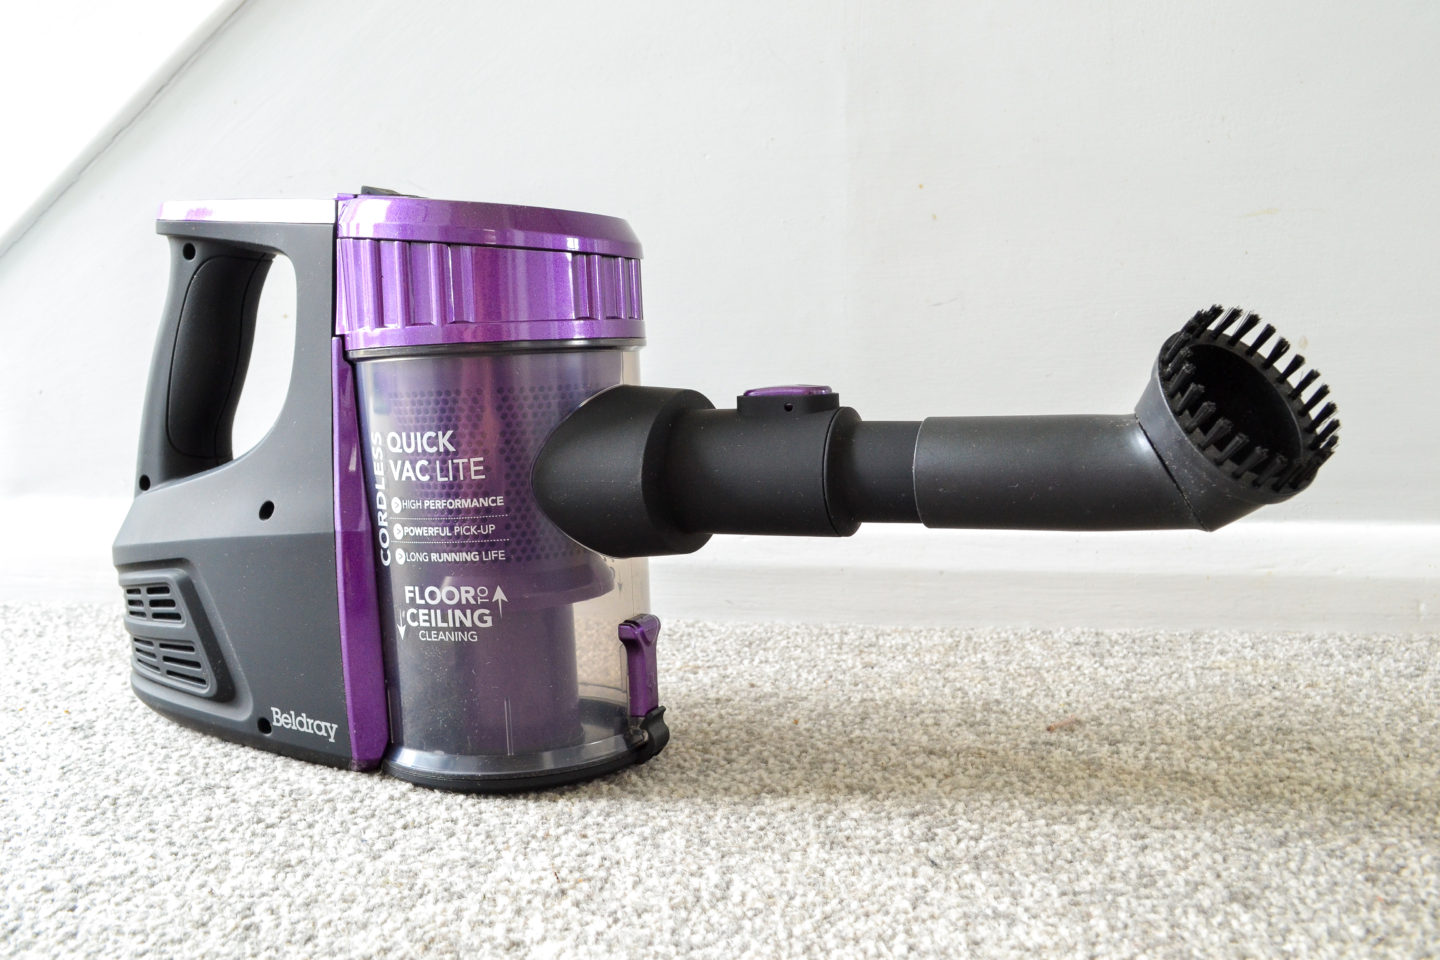 Beldray Quick Vac Lite review